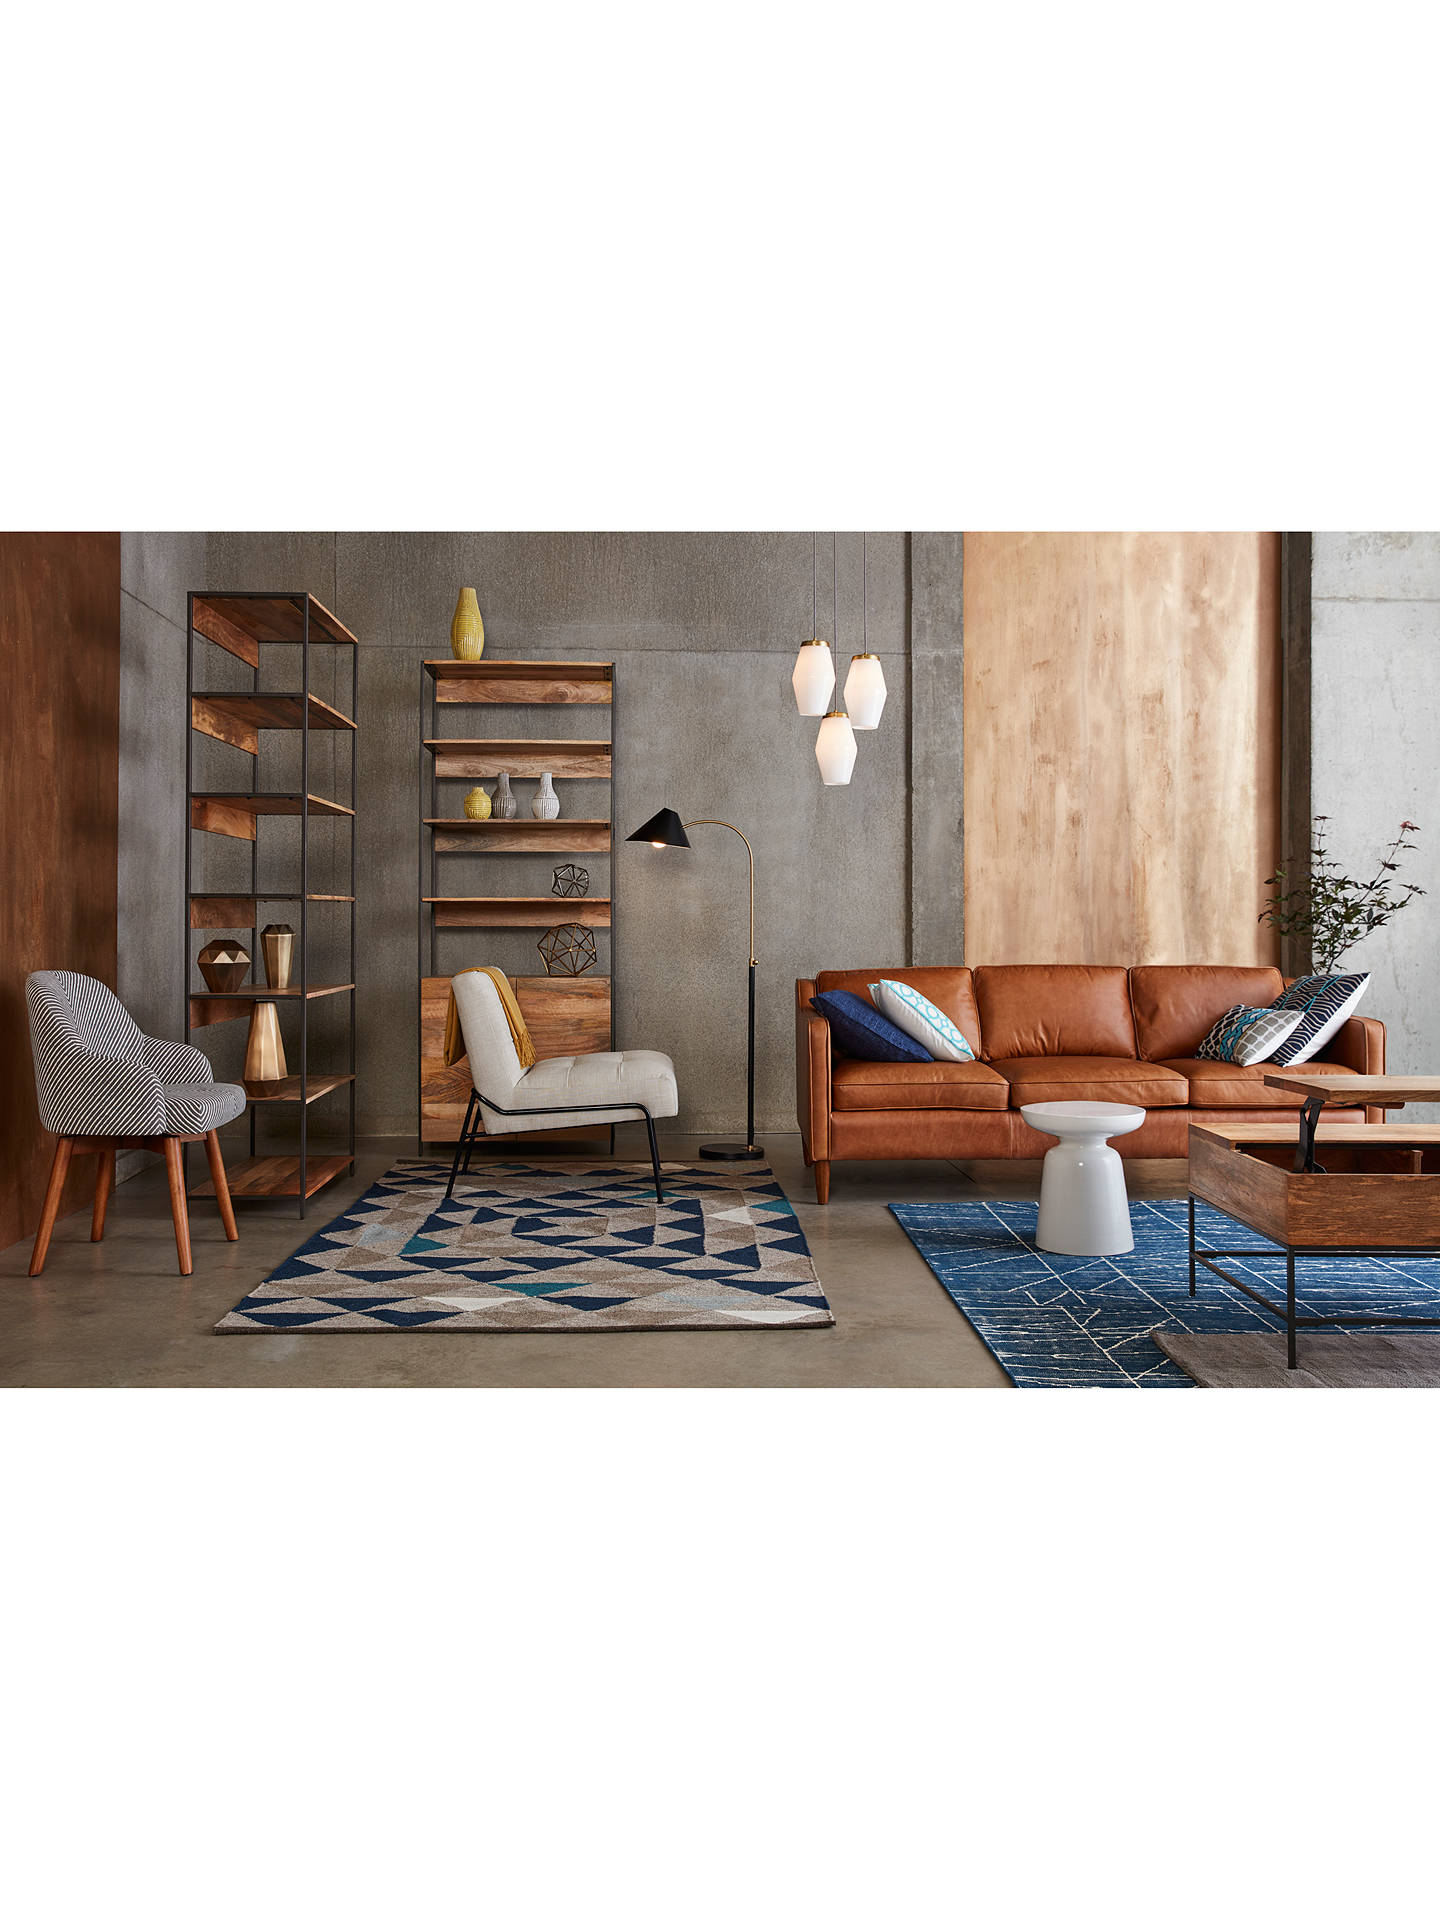 Fine West Elm Hamilton 3 Seater Sofa Sienna Creativecarmelina Interior Chair Design Creativecarmelinacom